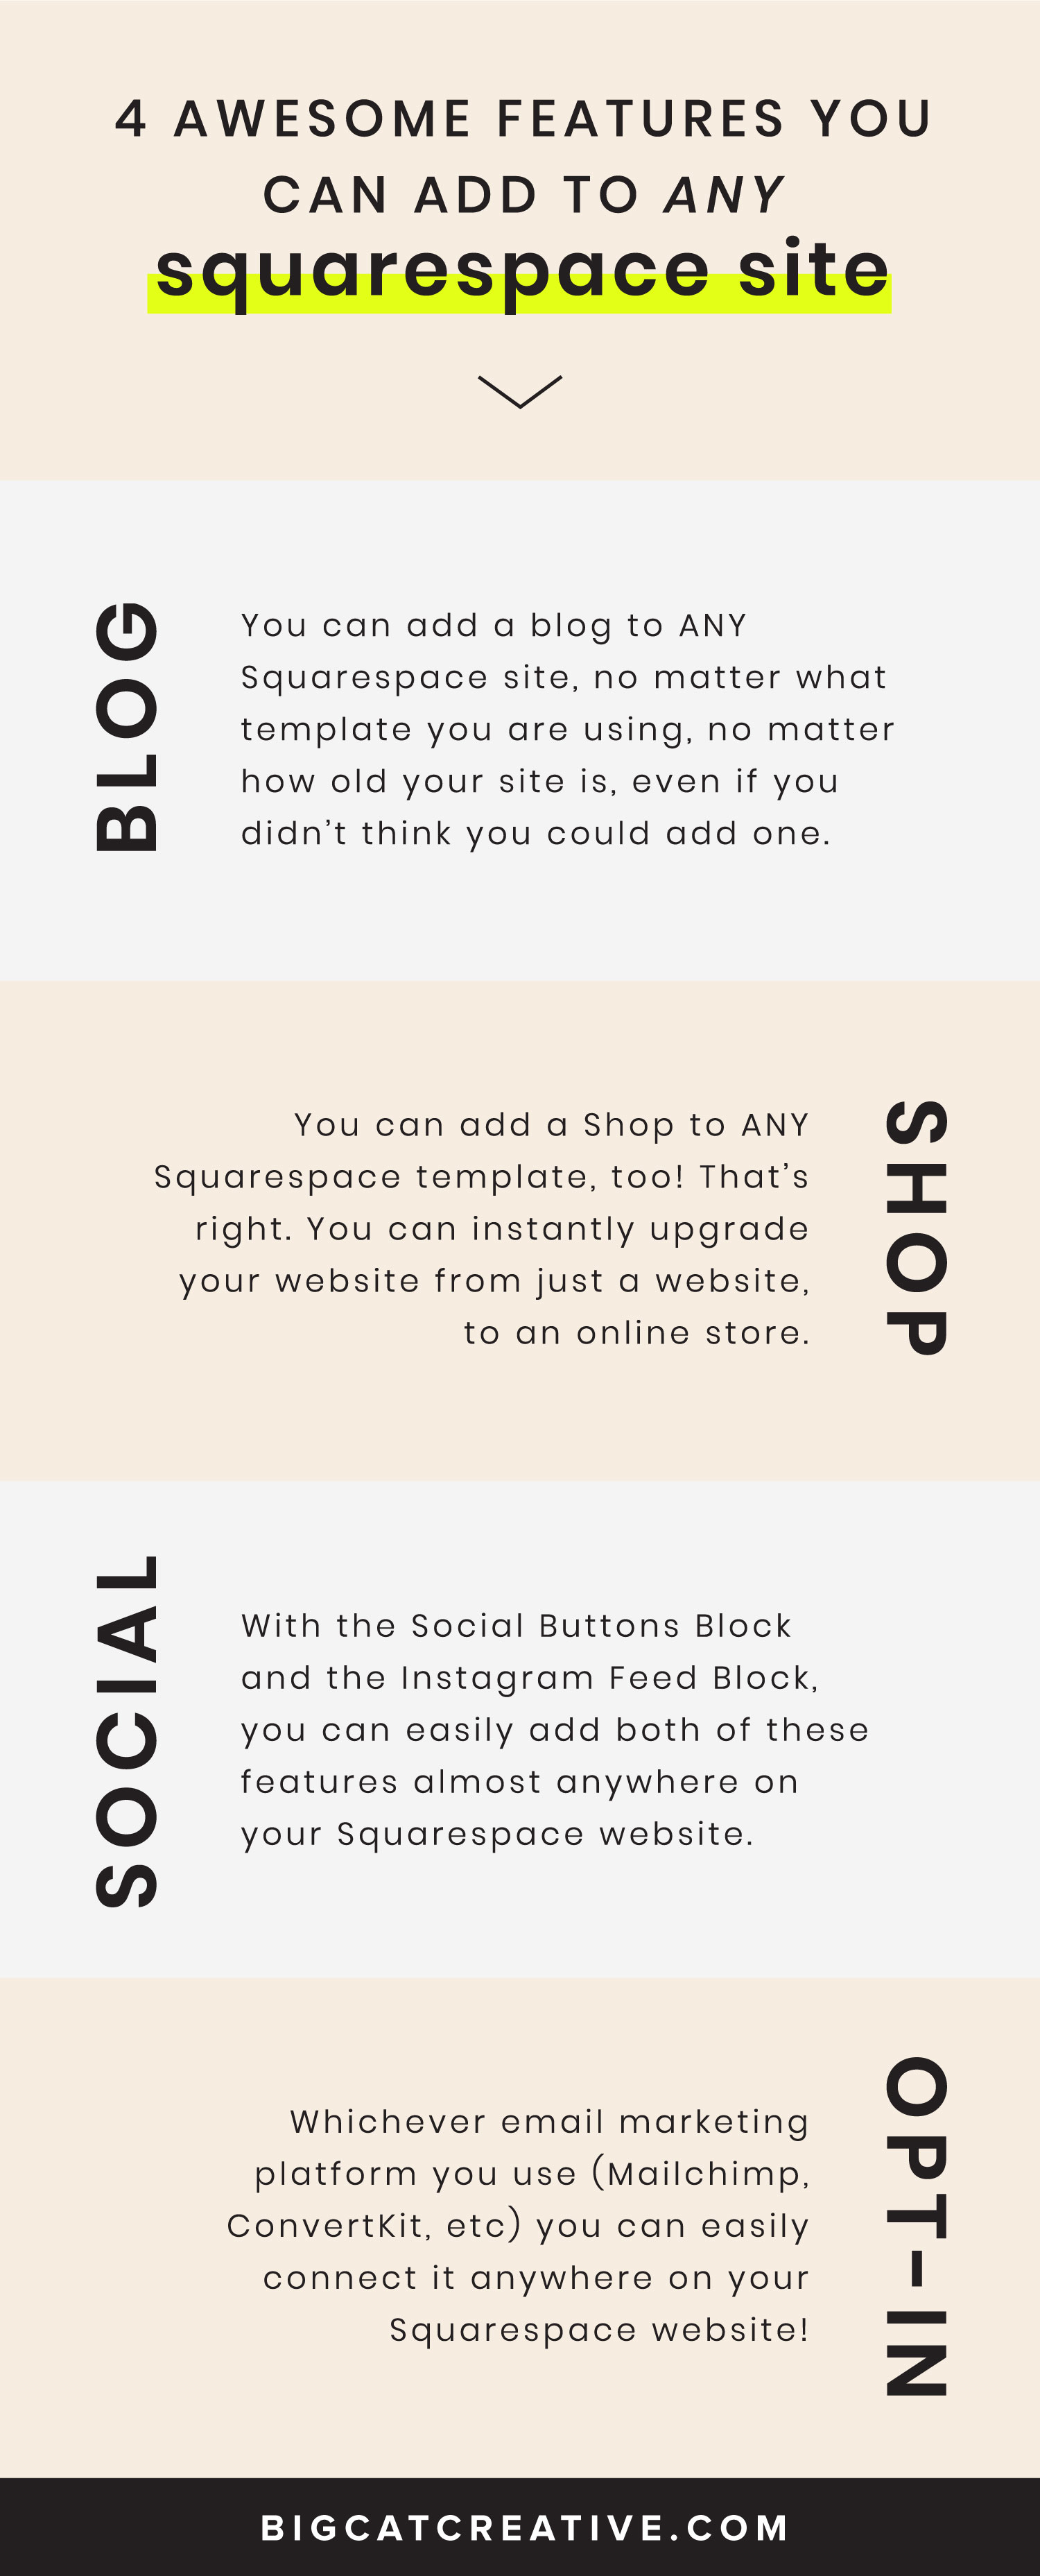 4 Awesome Features you can add to any Squarespace Website